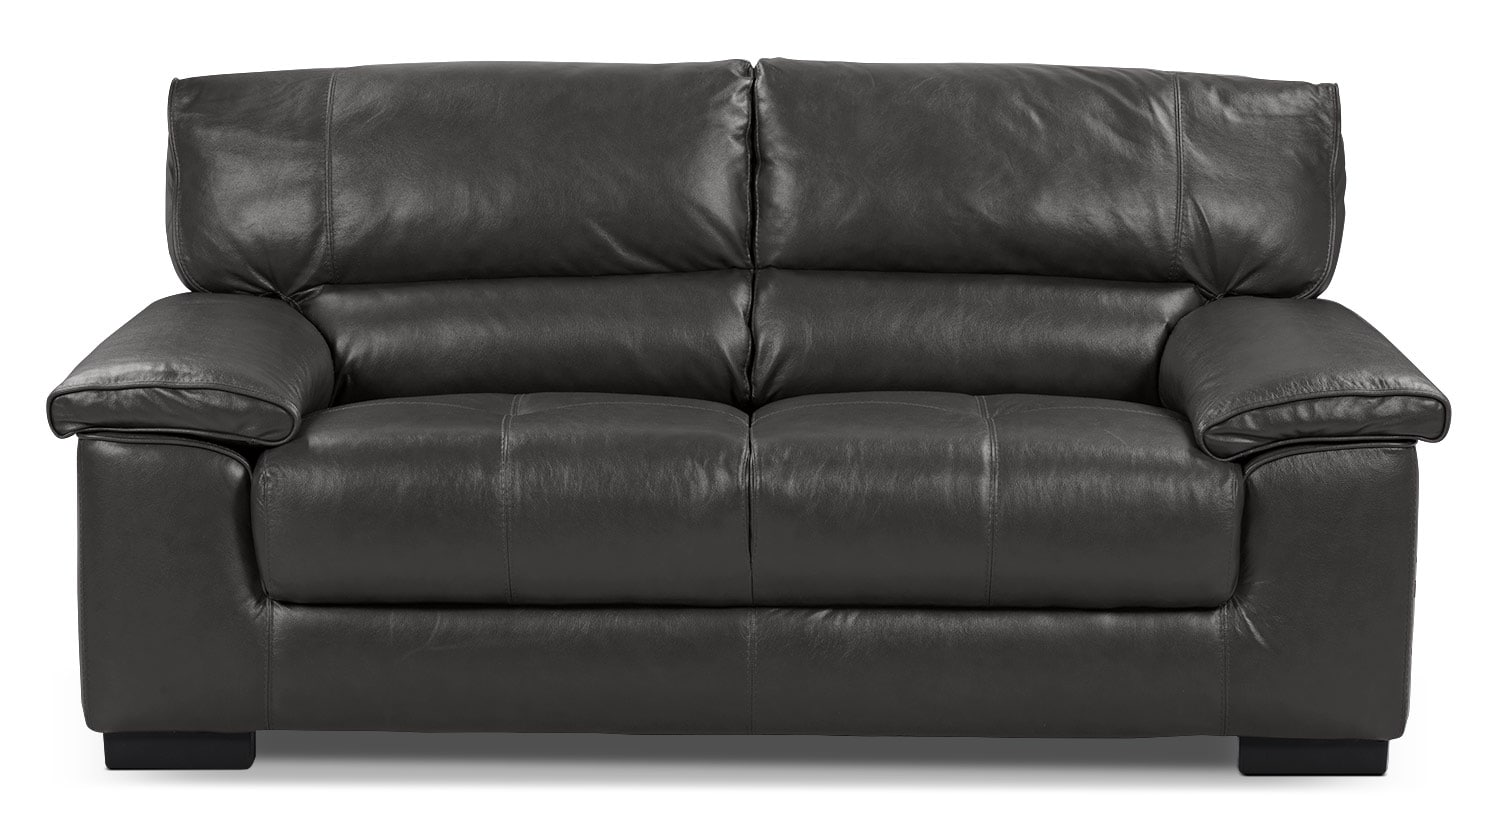 Chateau D 39 Ax 100 Genuine Leather Loveseat Charcoal The Brick